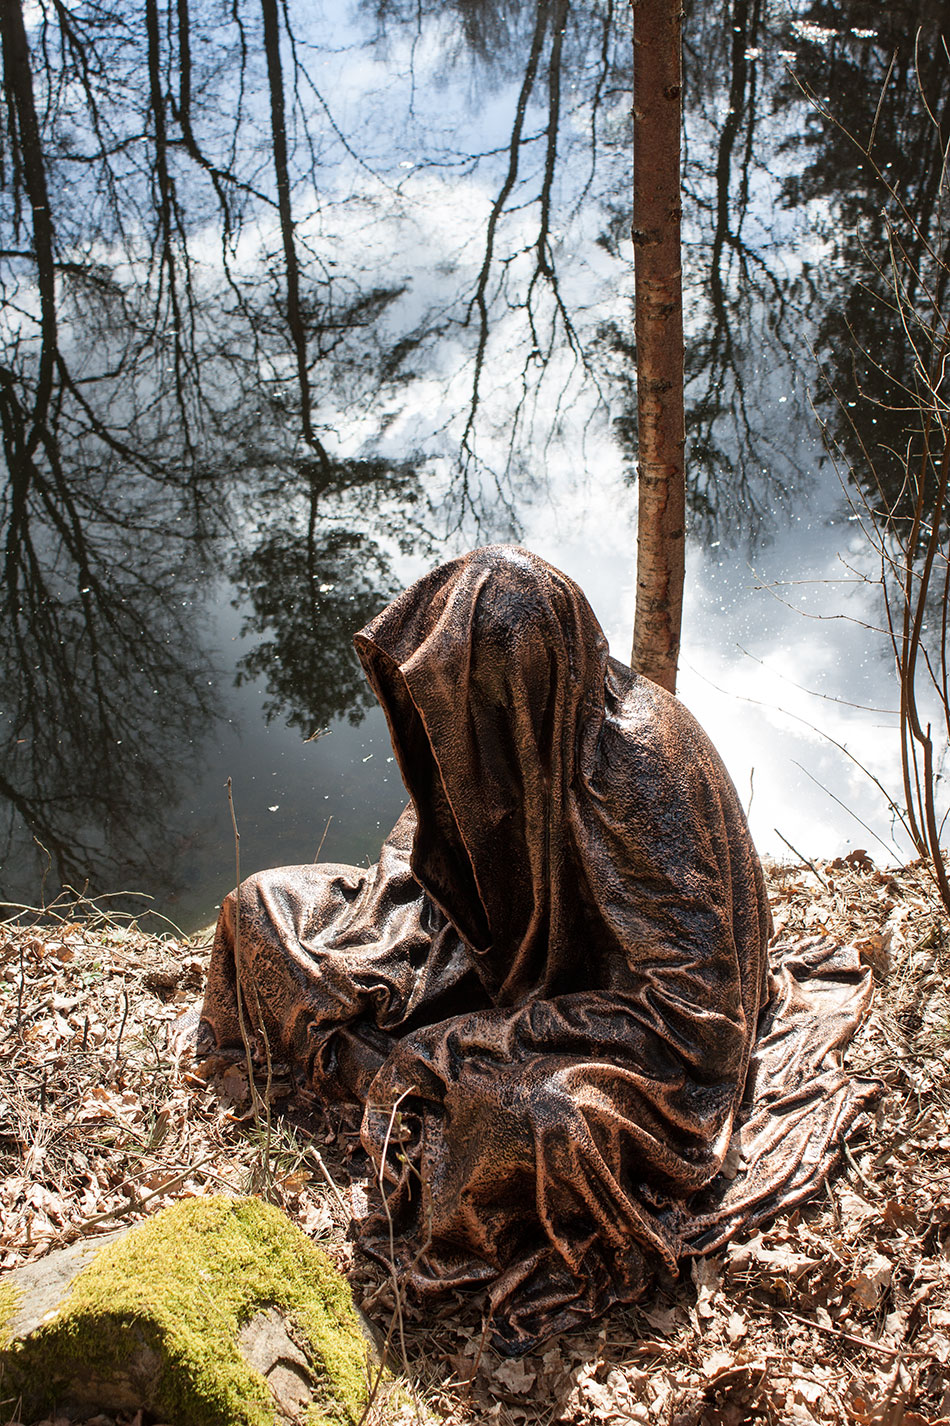 steinbruch-stone-querry-schrems-waldviertel-austria-water-reflection-guardians-of-time-manfred-kielnhofer-8495